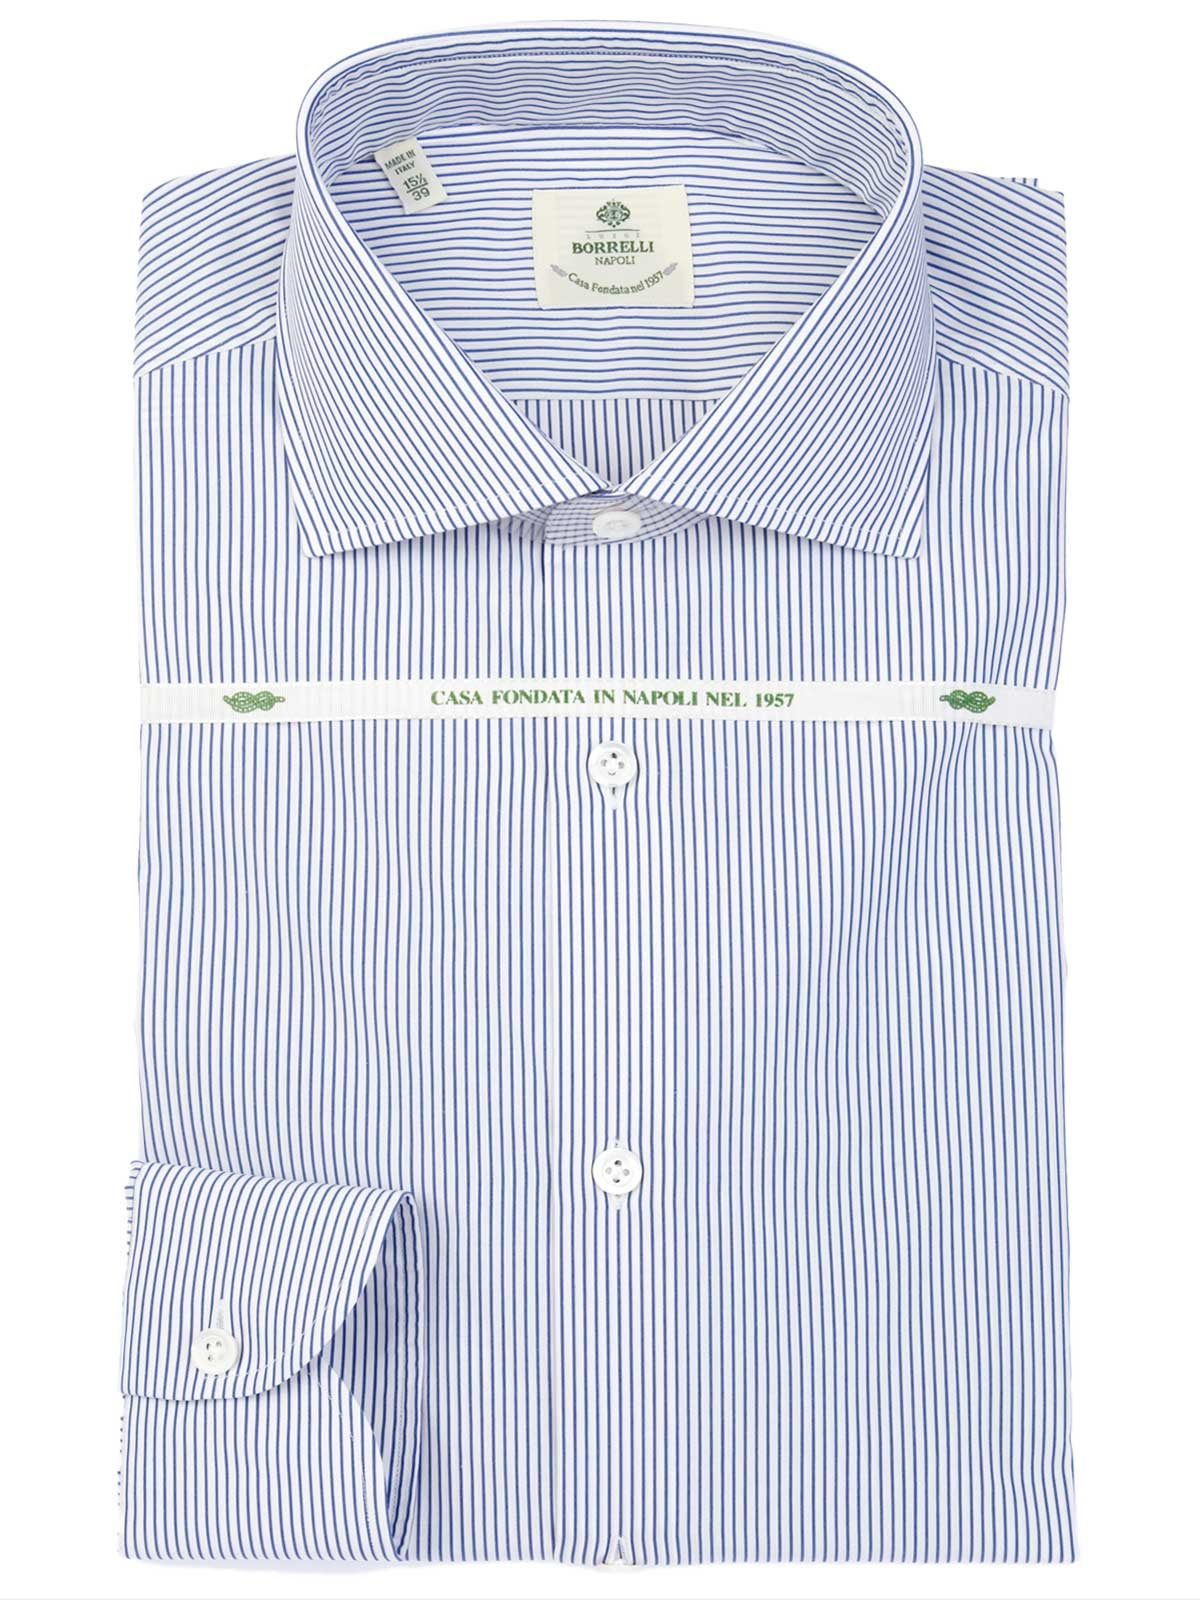 Picture of BORRELLI | Lined Shirt